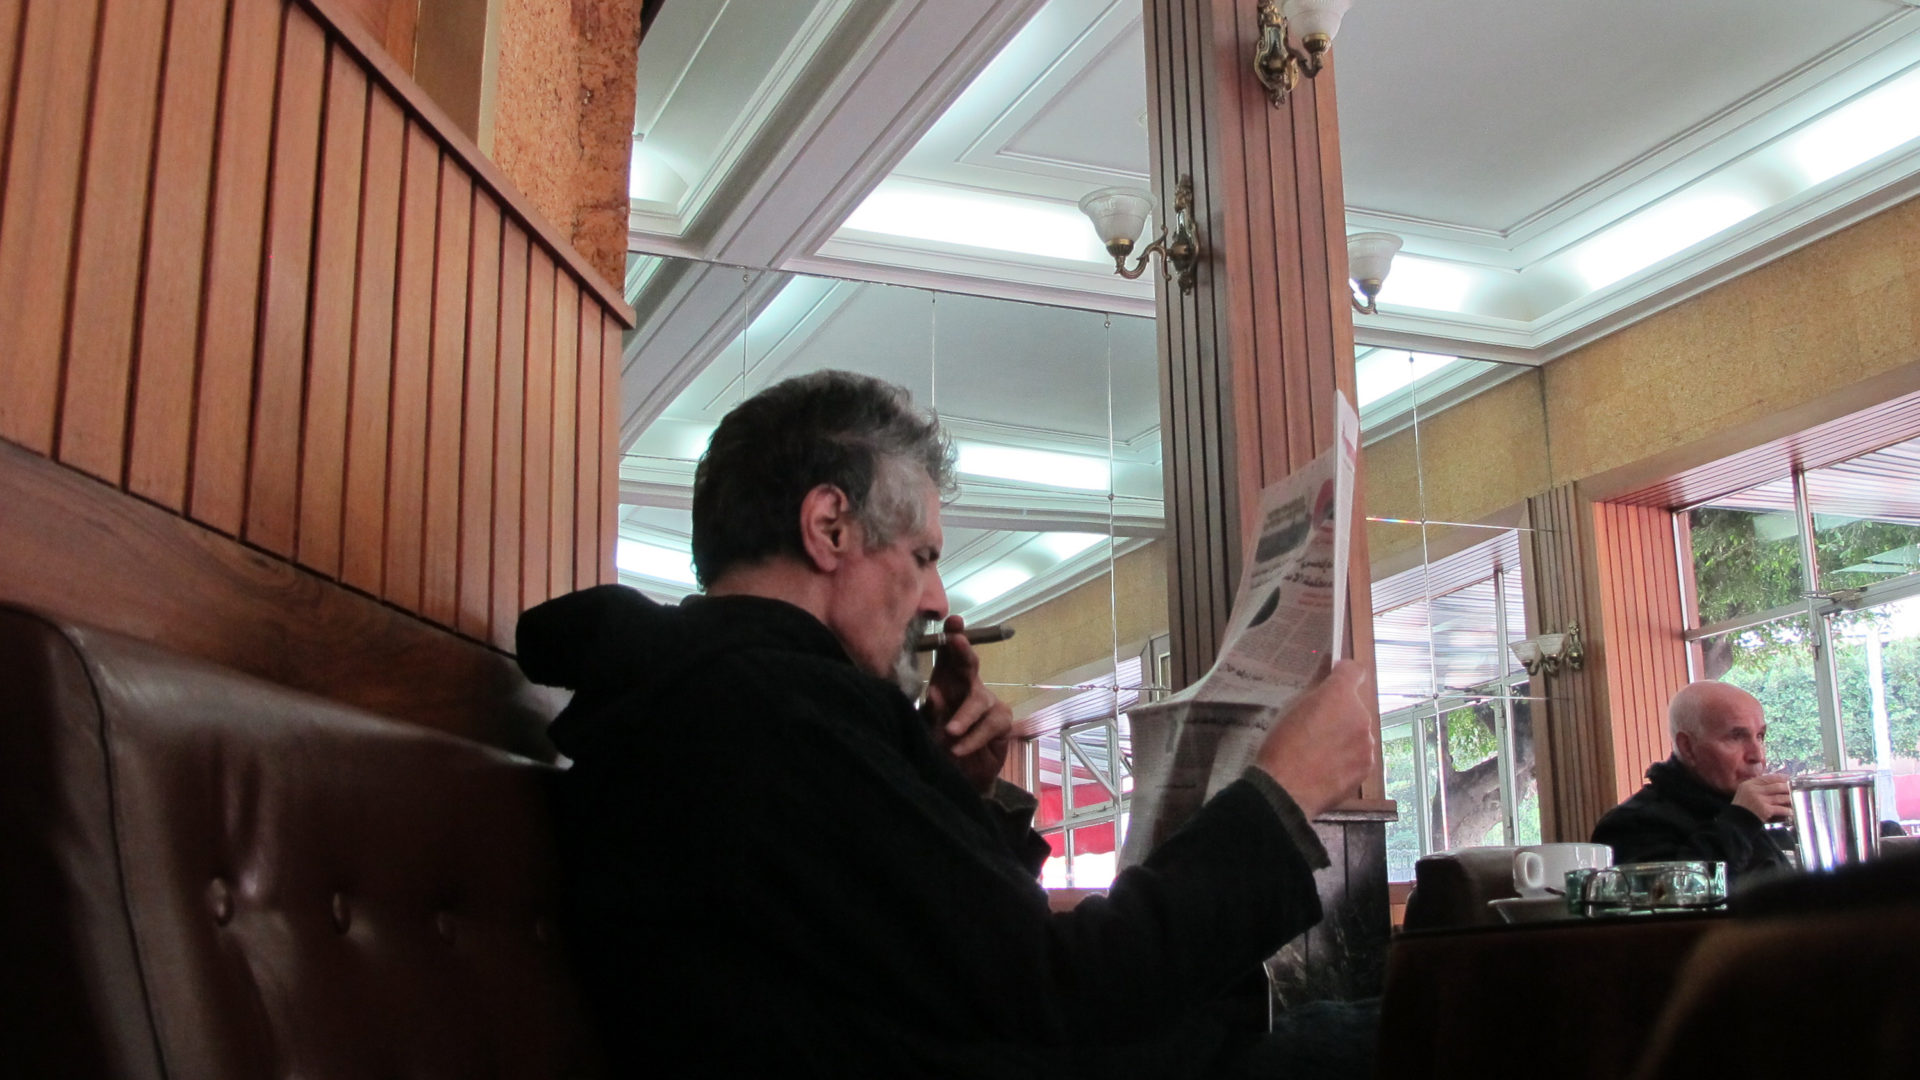 Reading paper with cigar in Cafe de Paris